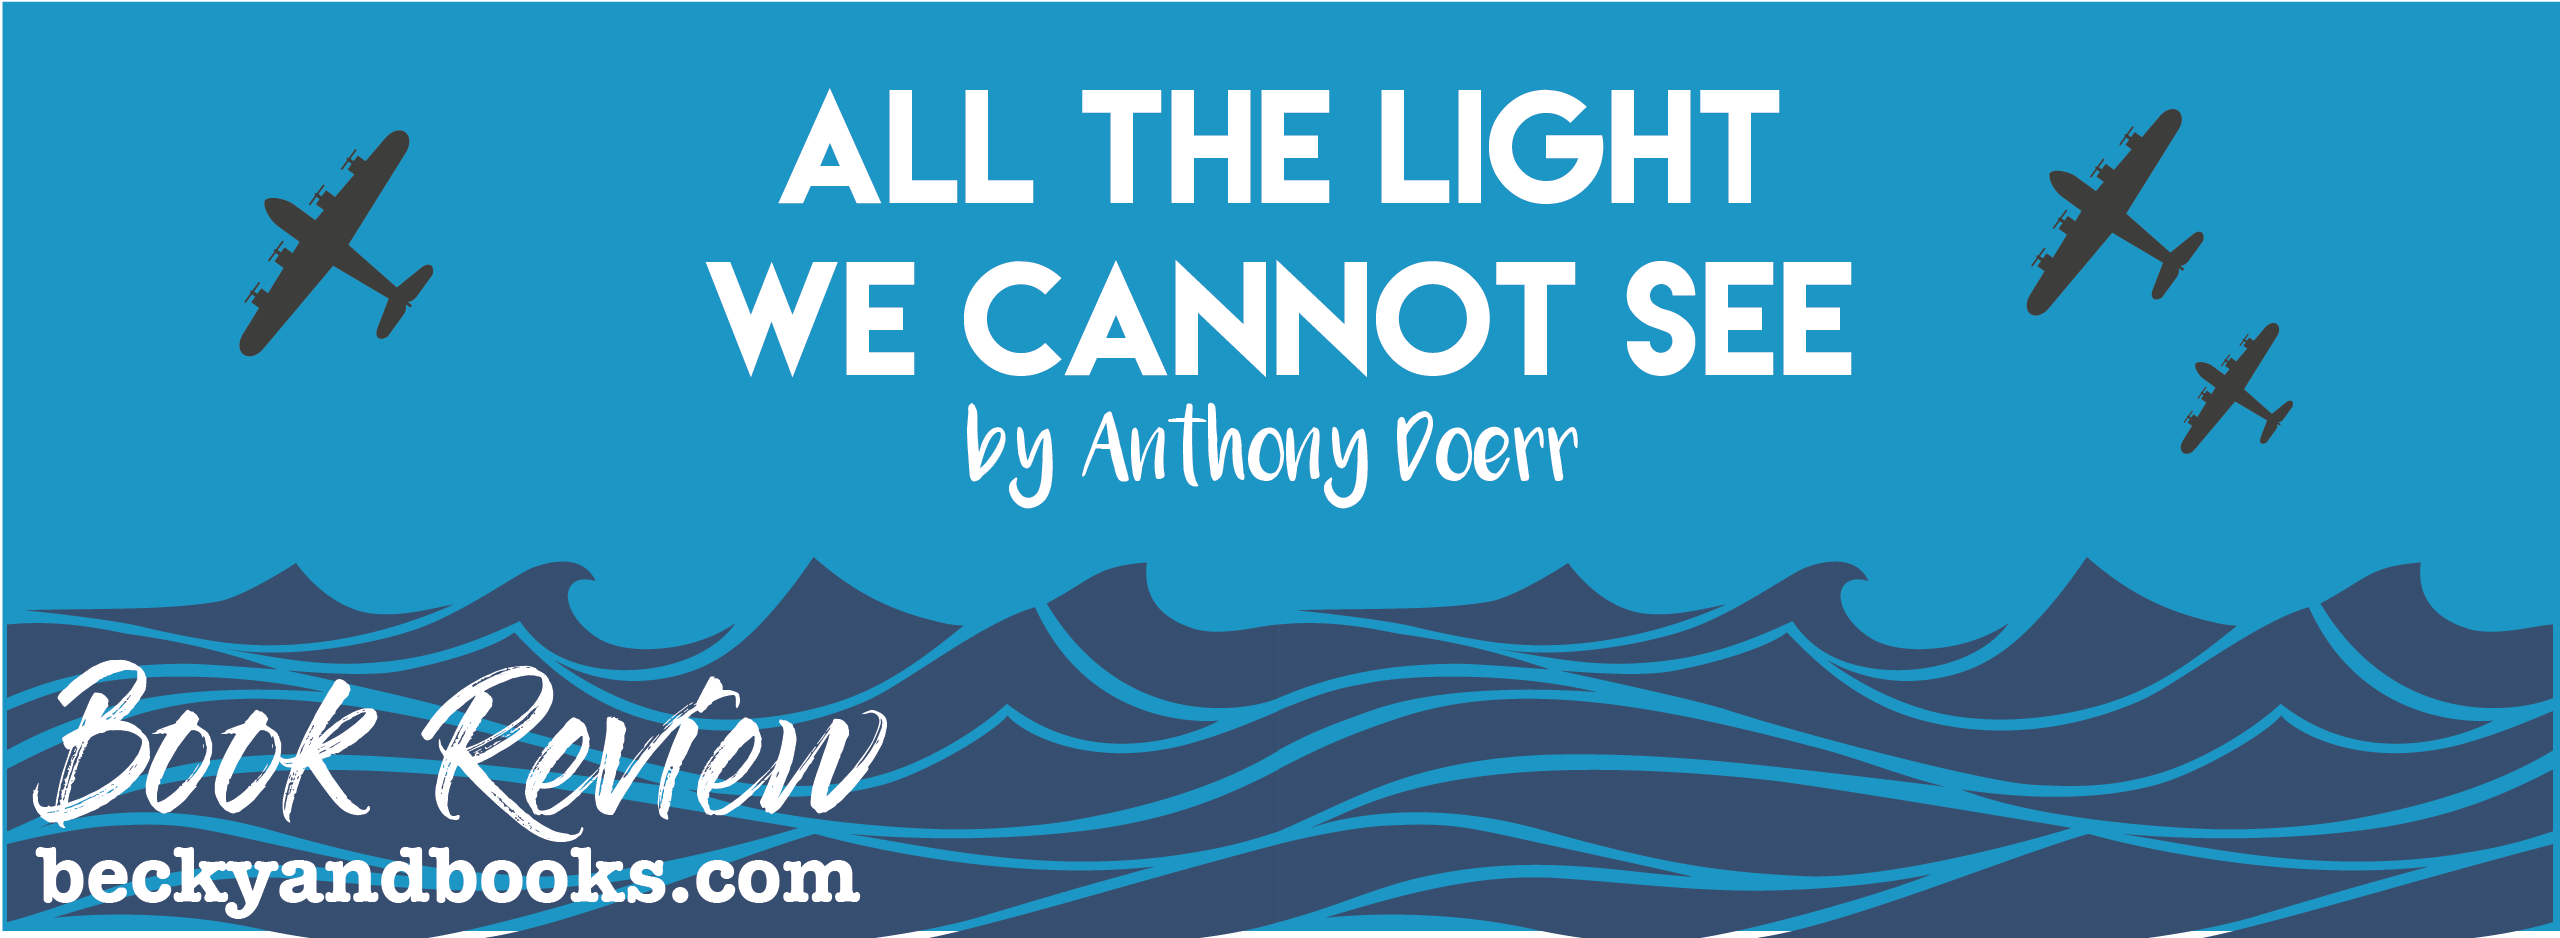 [Book Review] All The Light We Cannot See By Anthony Doerr